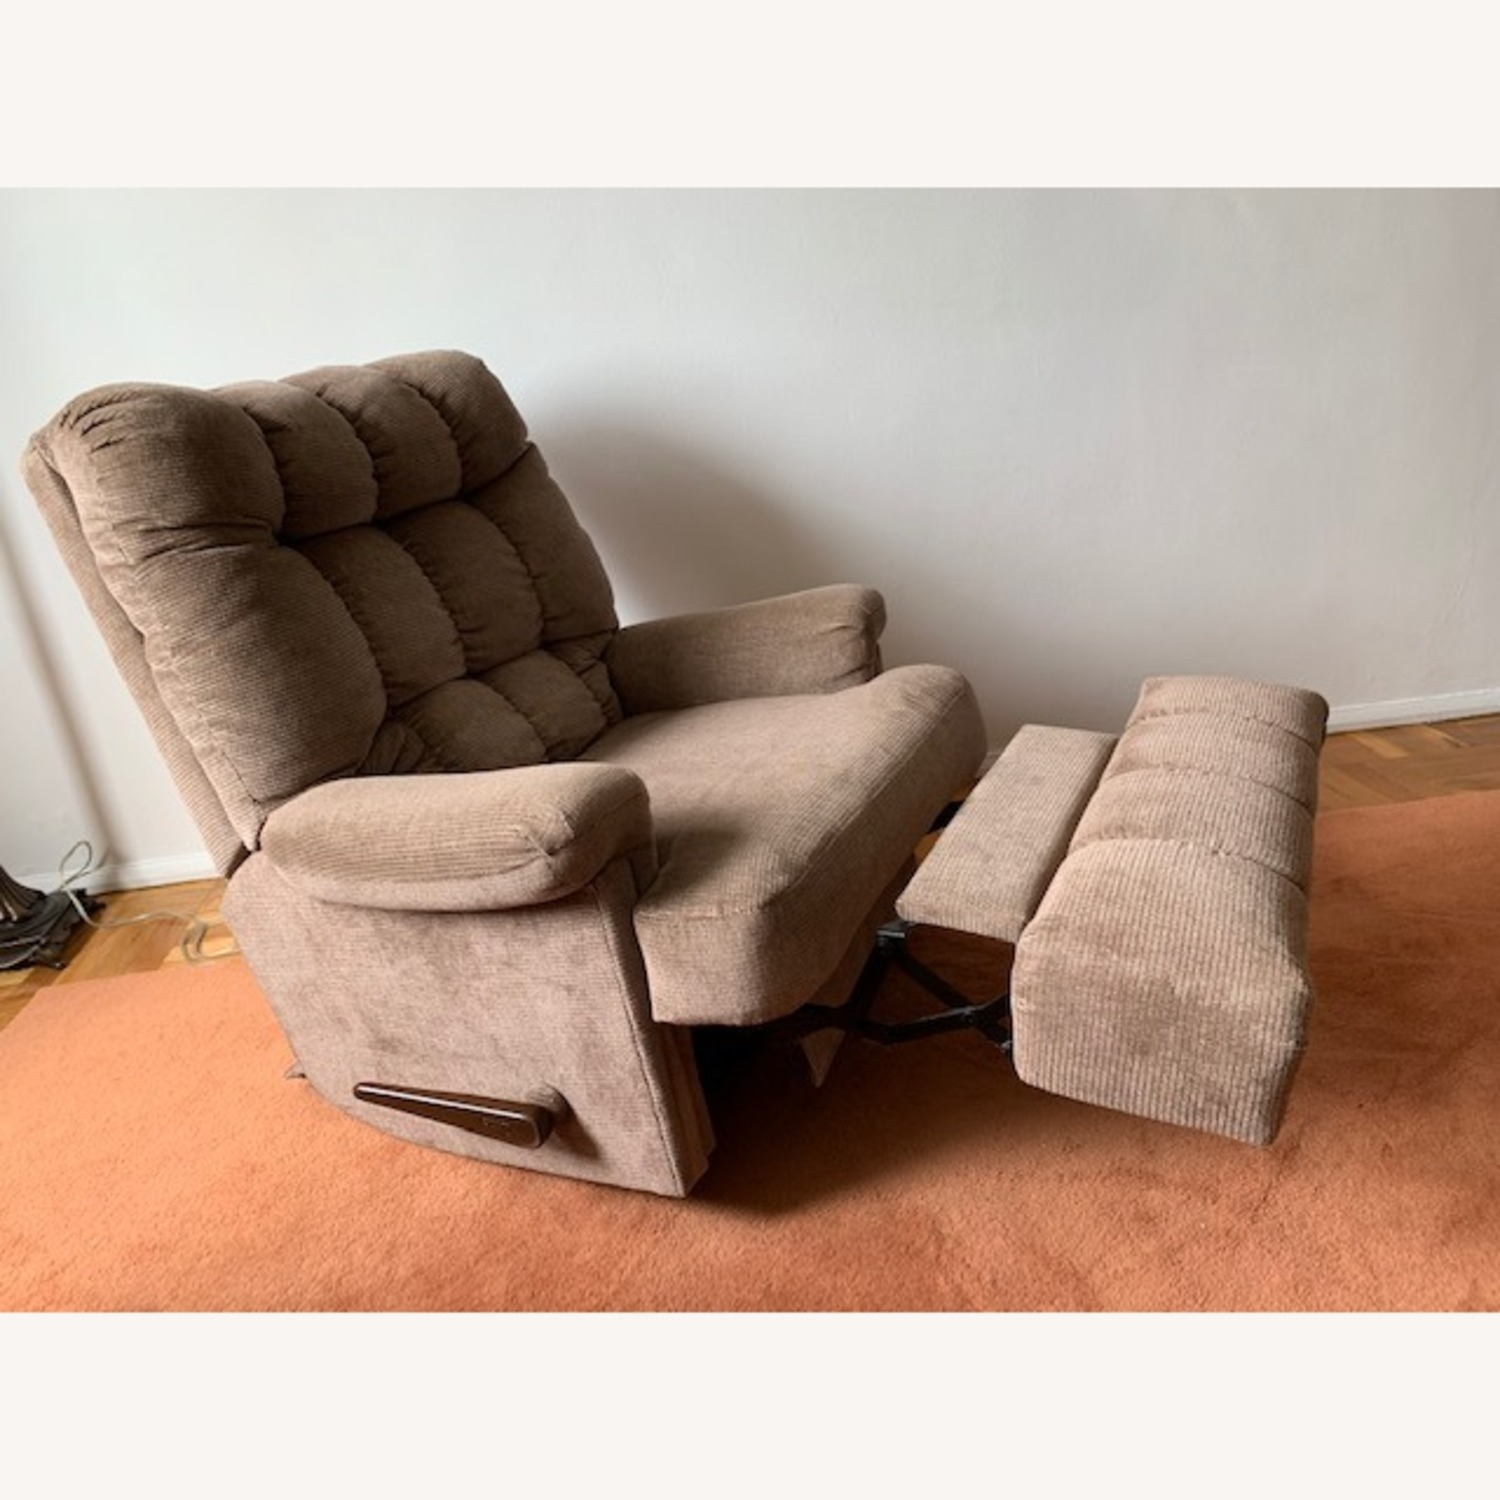 Fabric Armchair Recliner - image-23